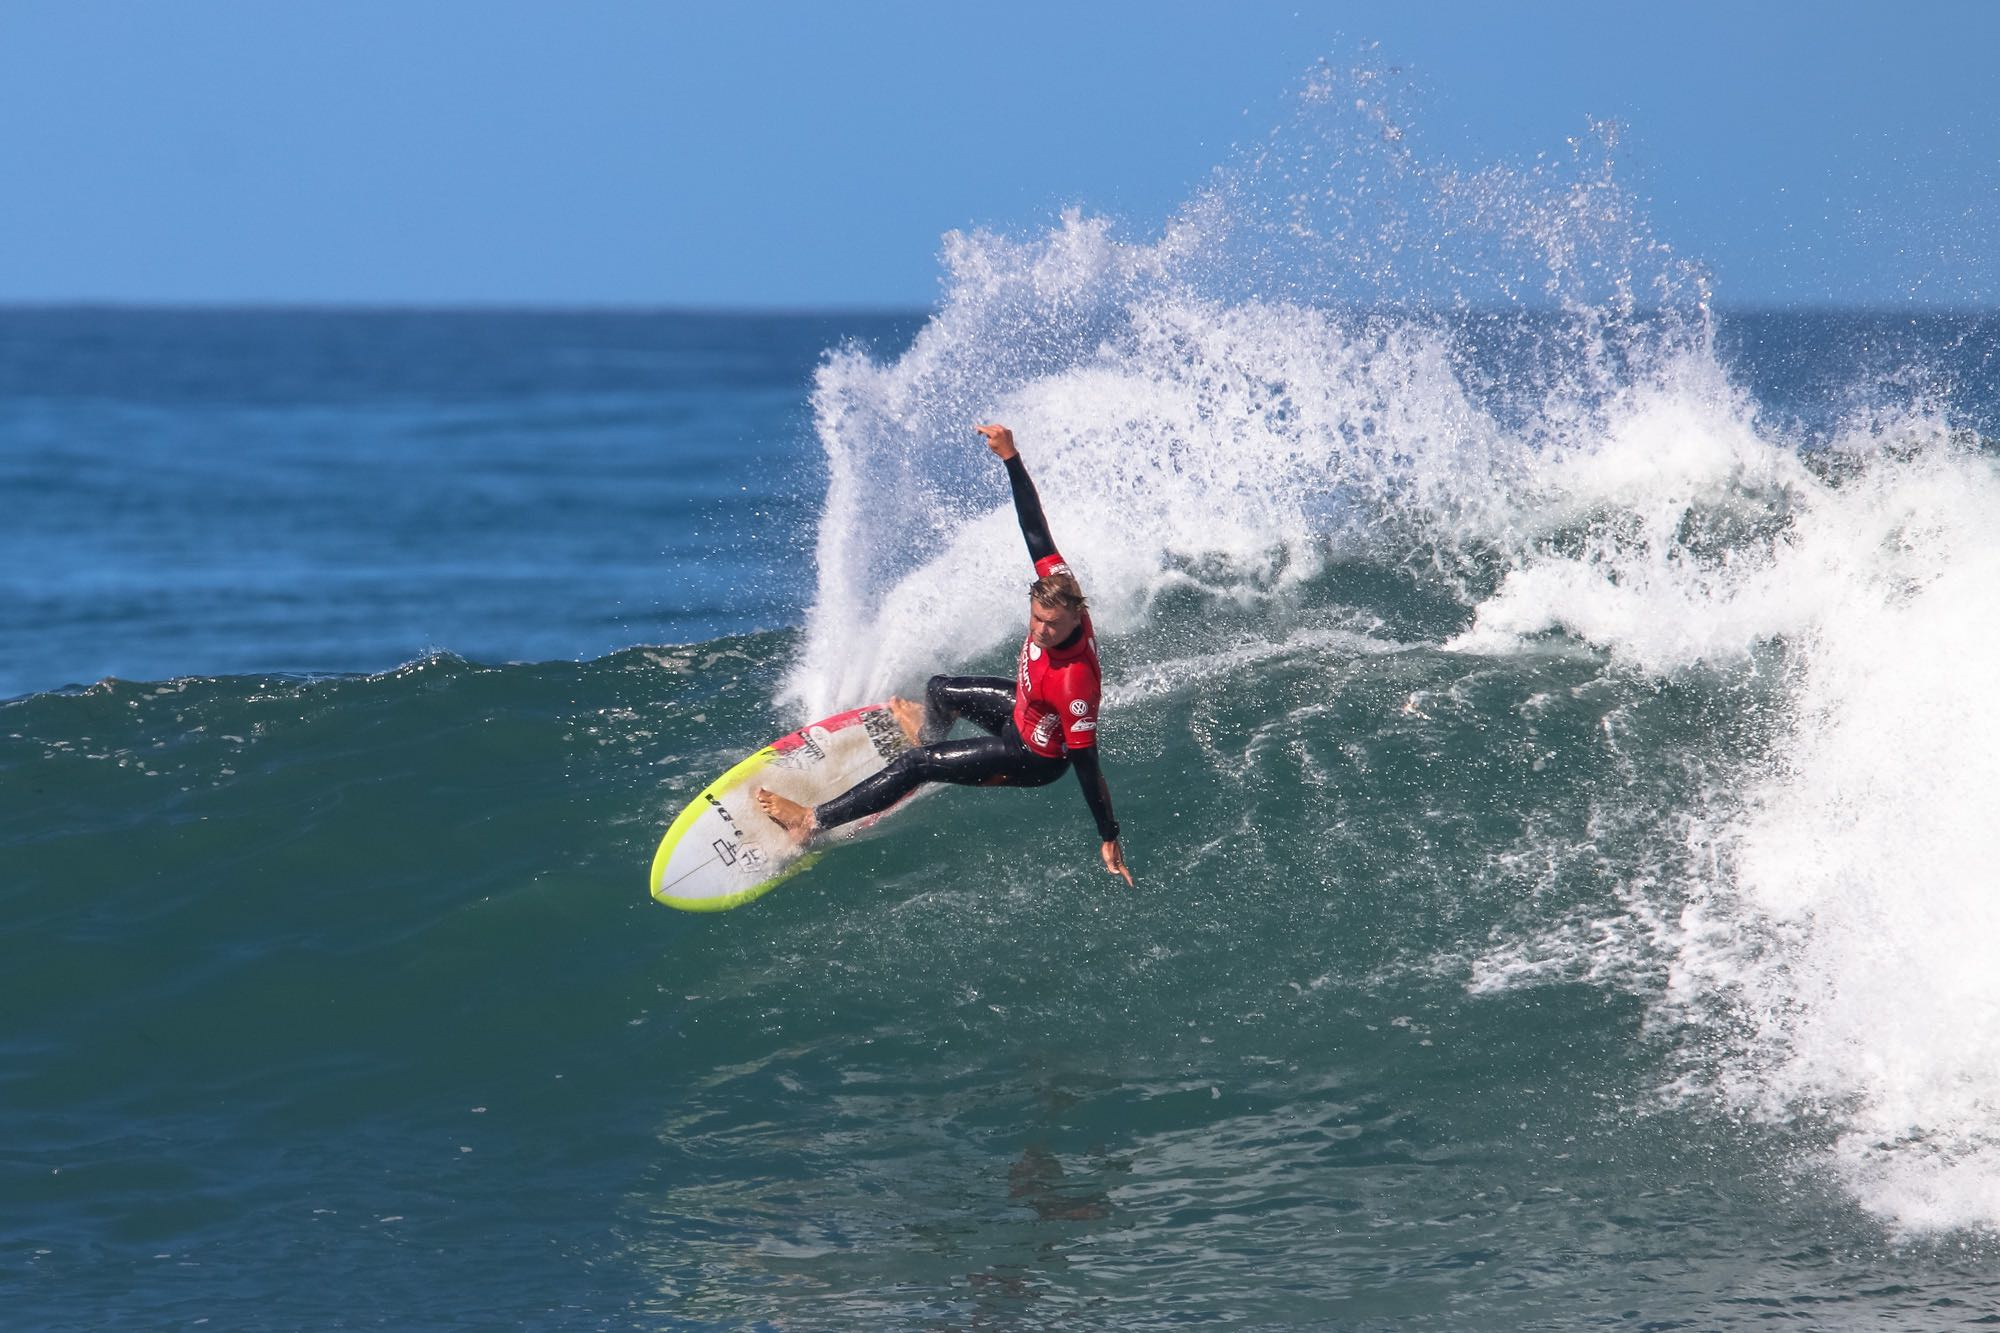 Dale Staples surfing his way to victory at the Mitchum Buffalo City Surf Pro